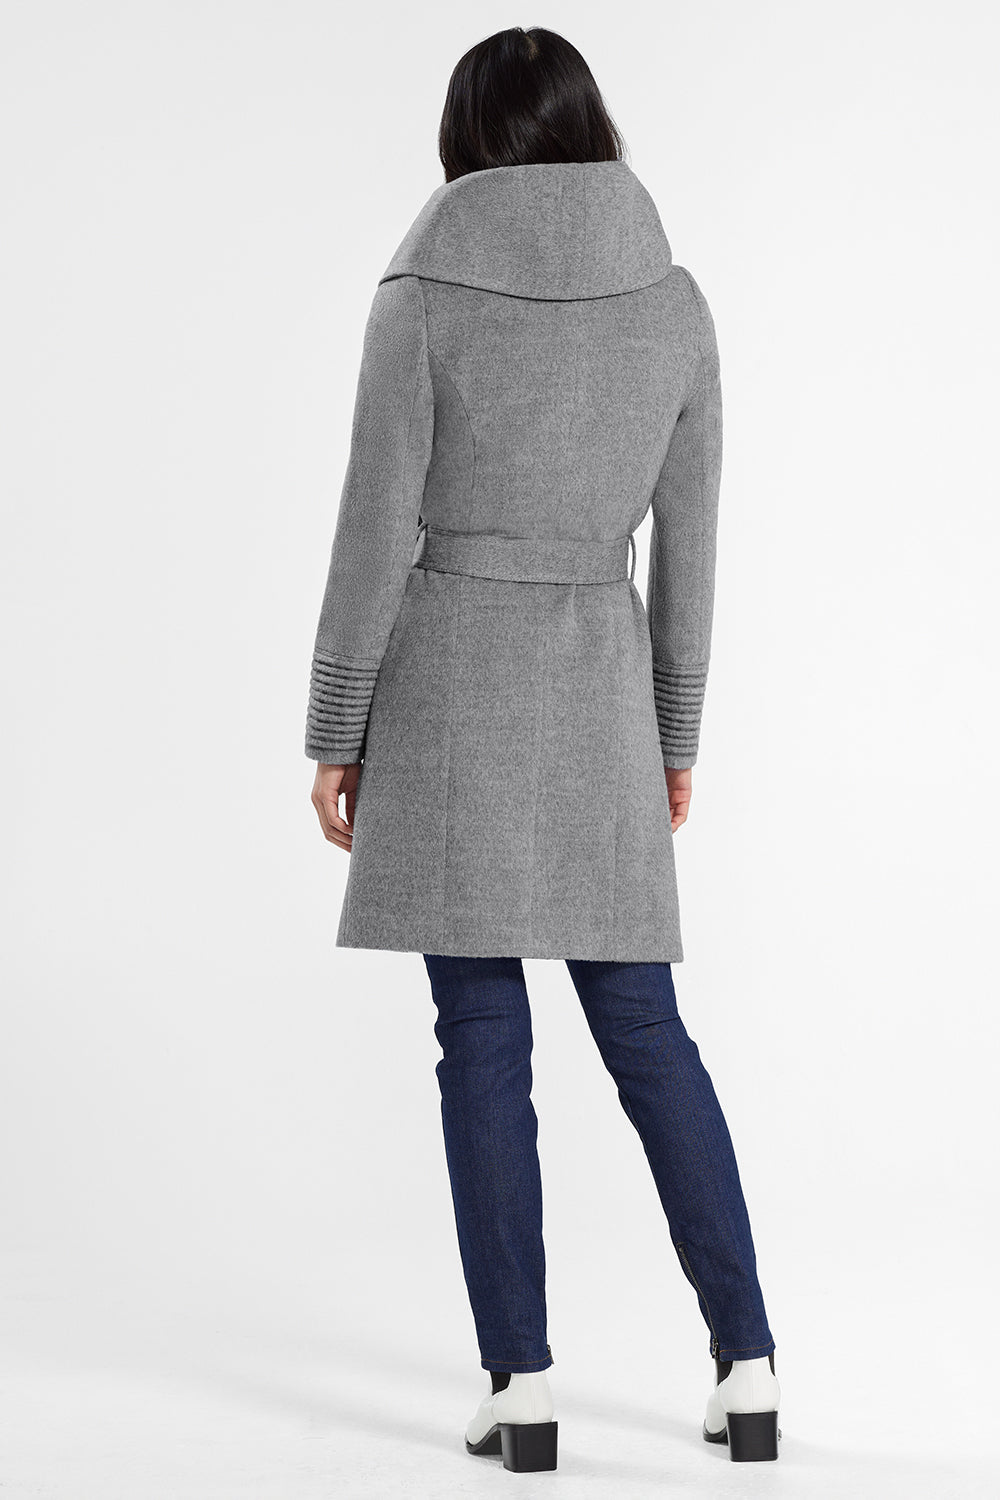 Sentaler Mid Length Hooded Wrap Coat featured in Baby Alpaca and available in Shale Grey. Seen from back.